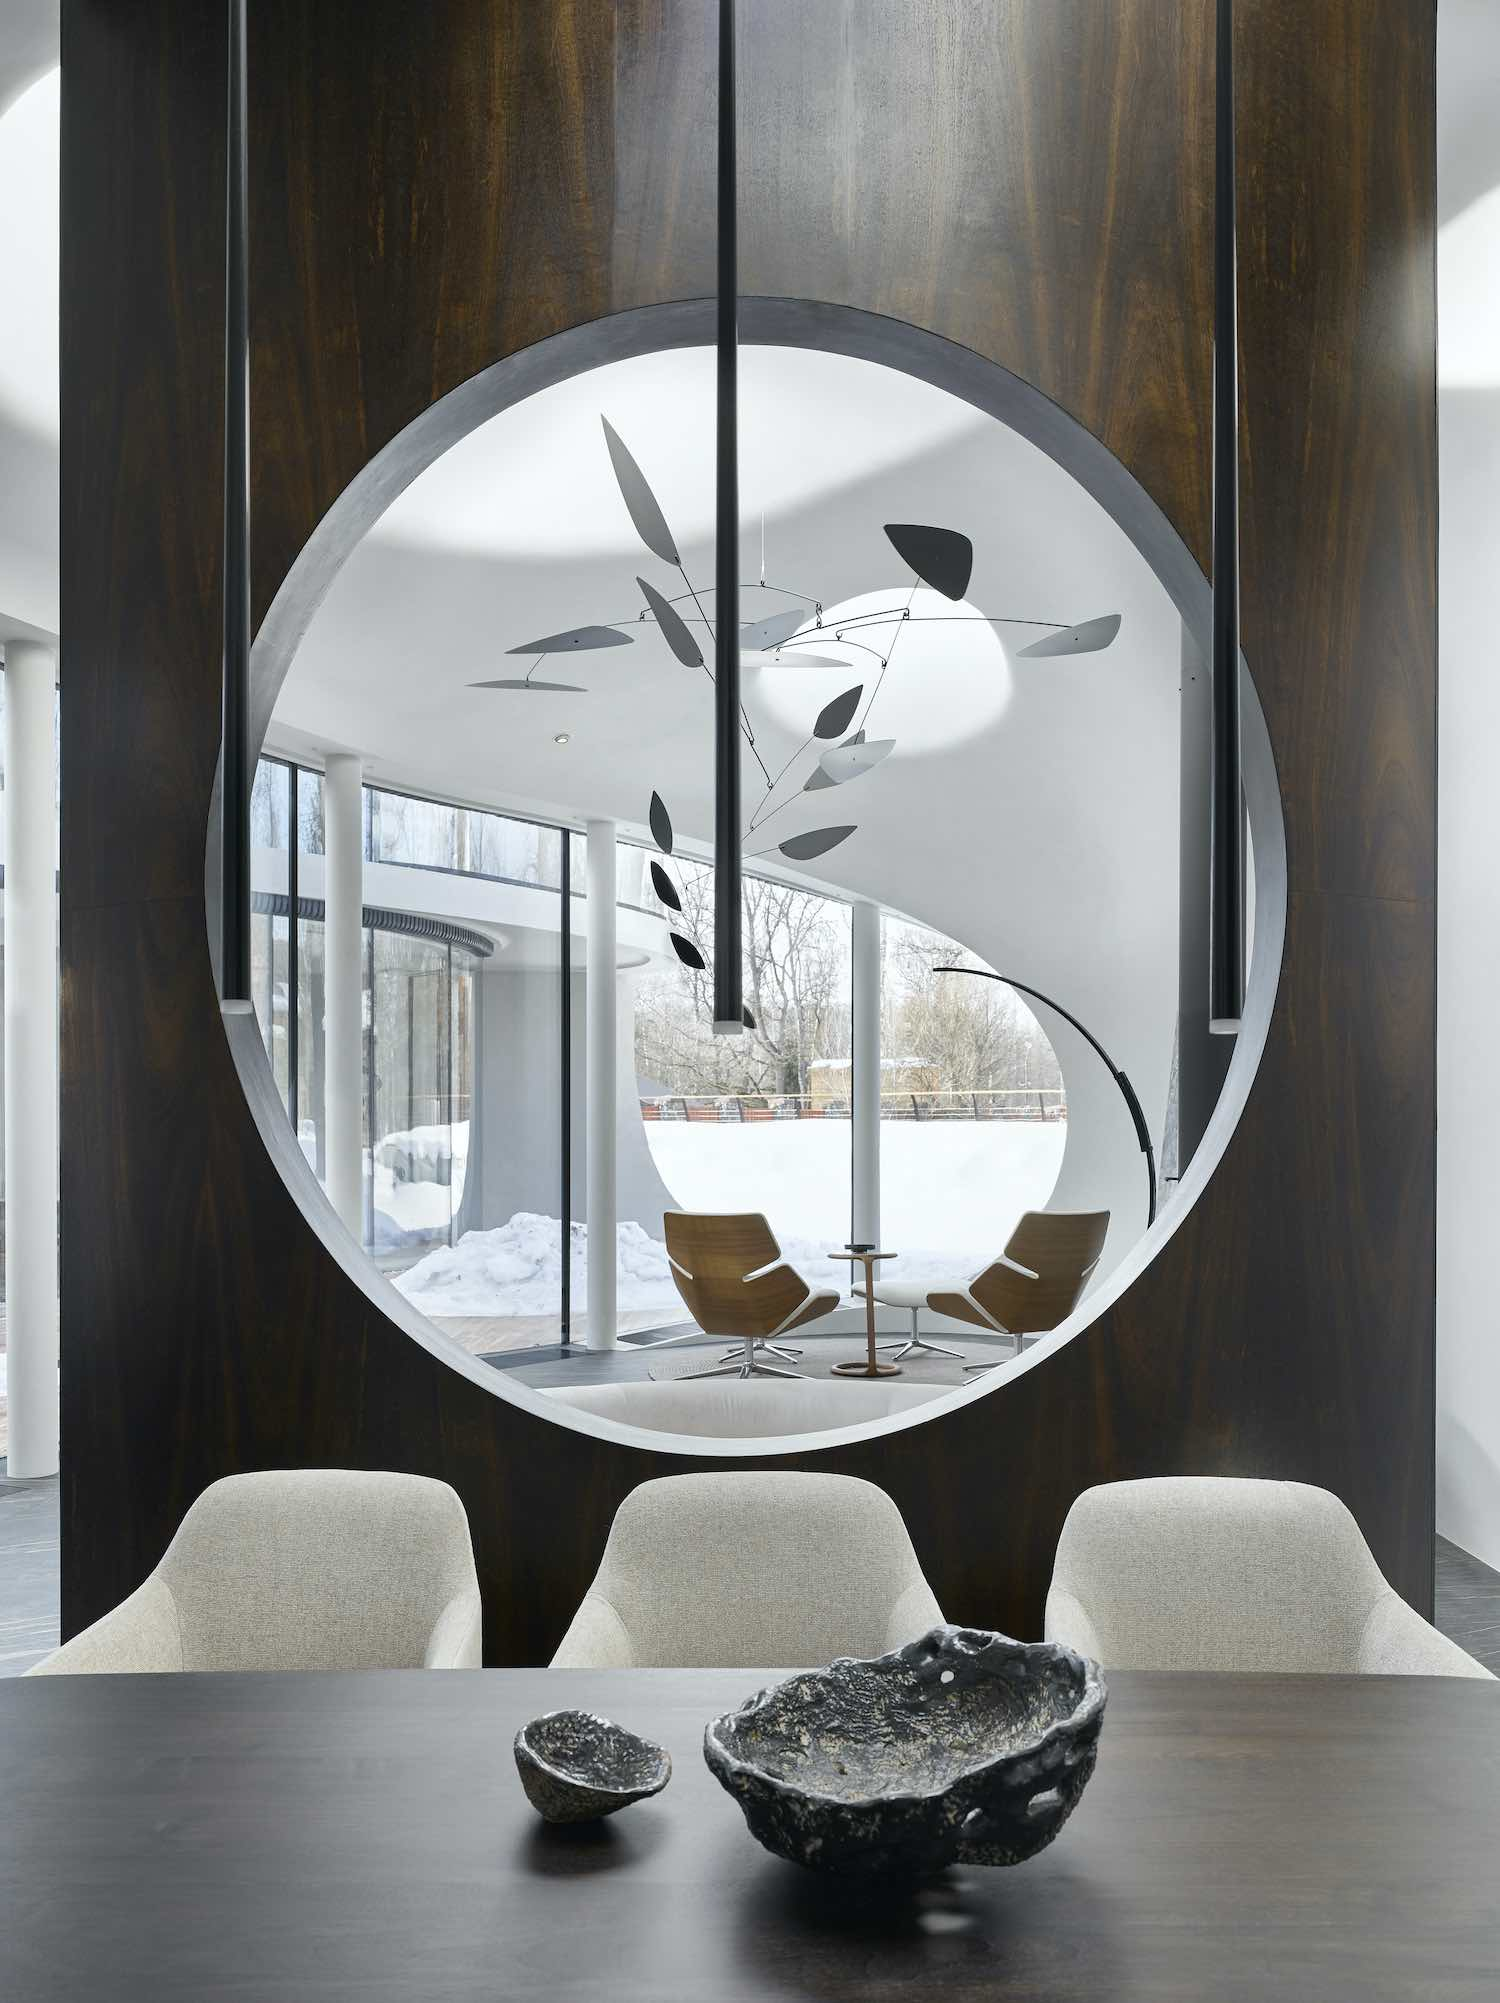 a circular opening in the wall between dining area and living room